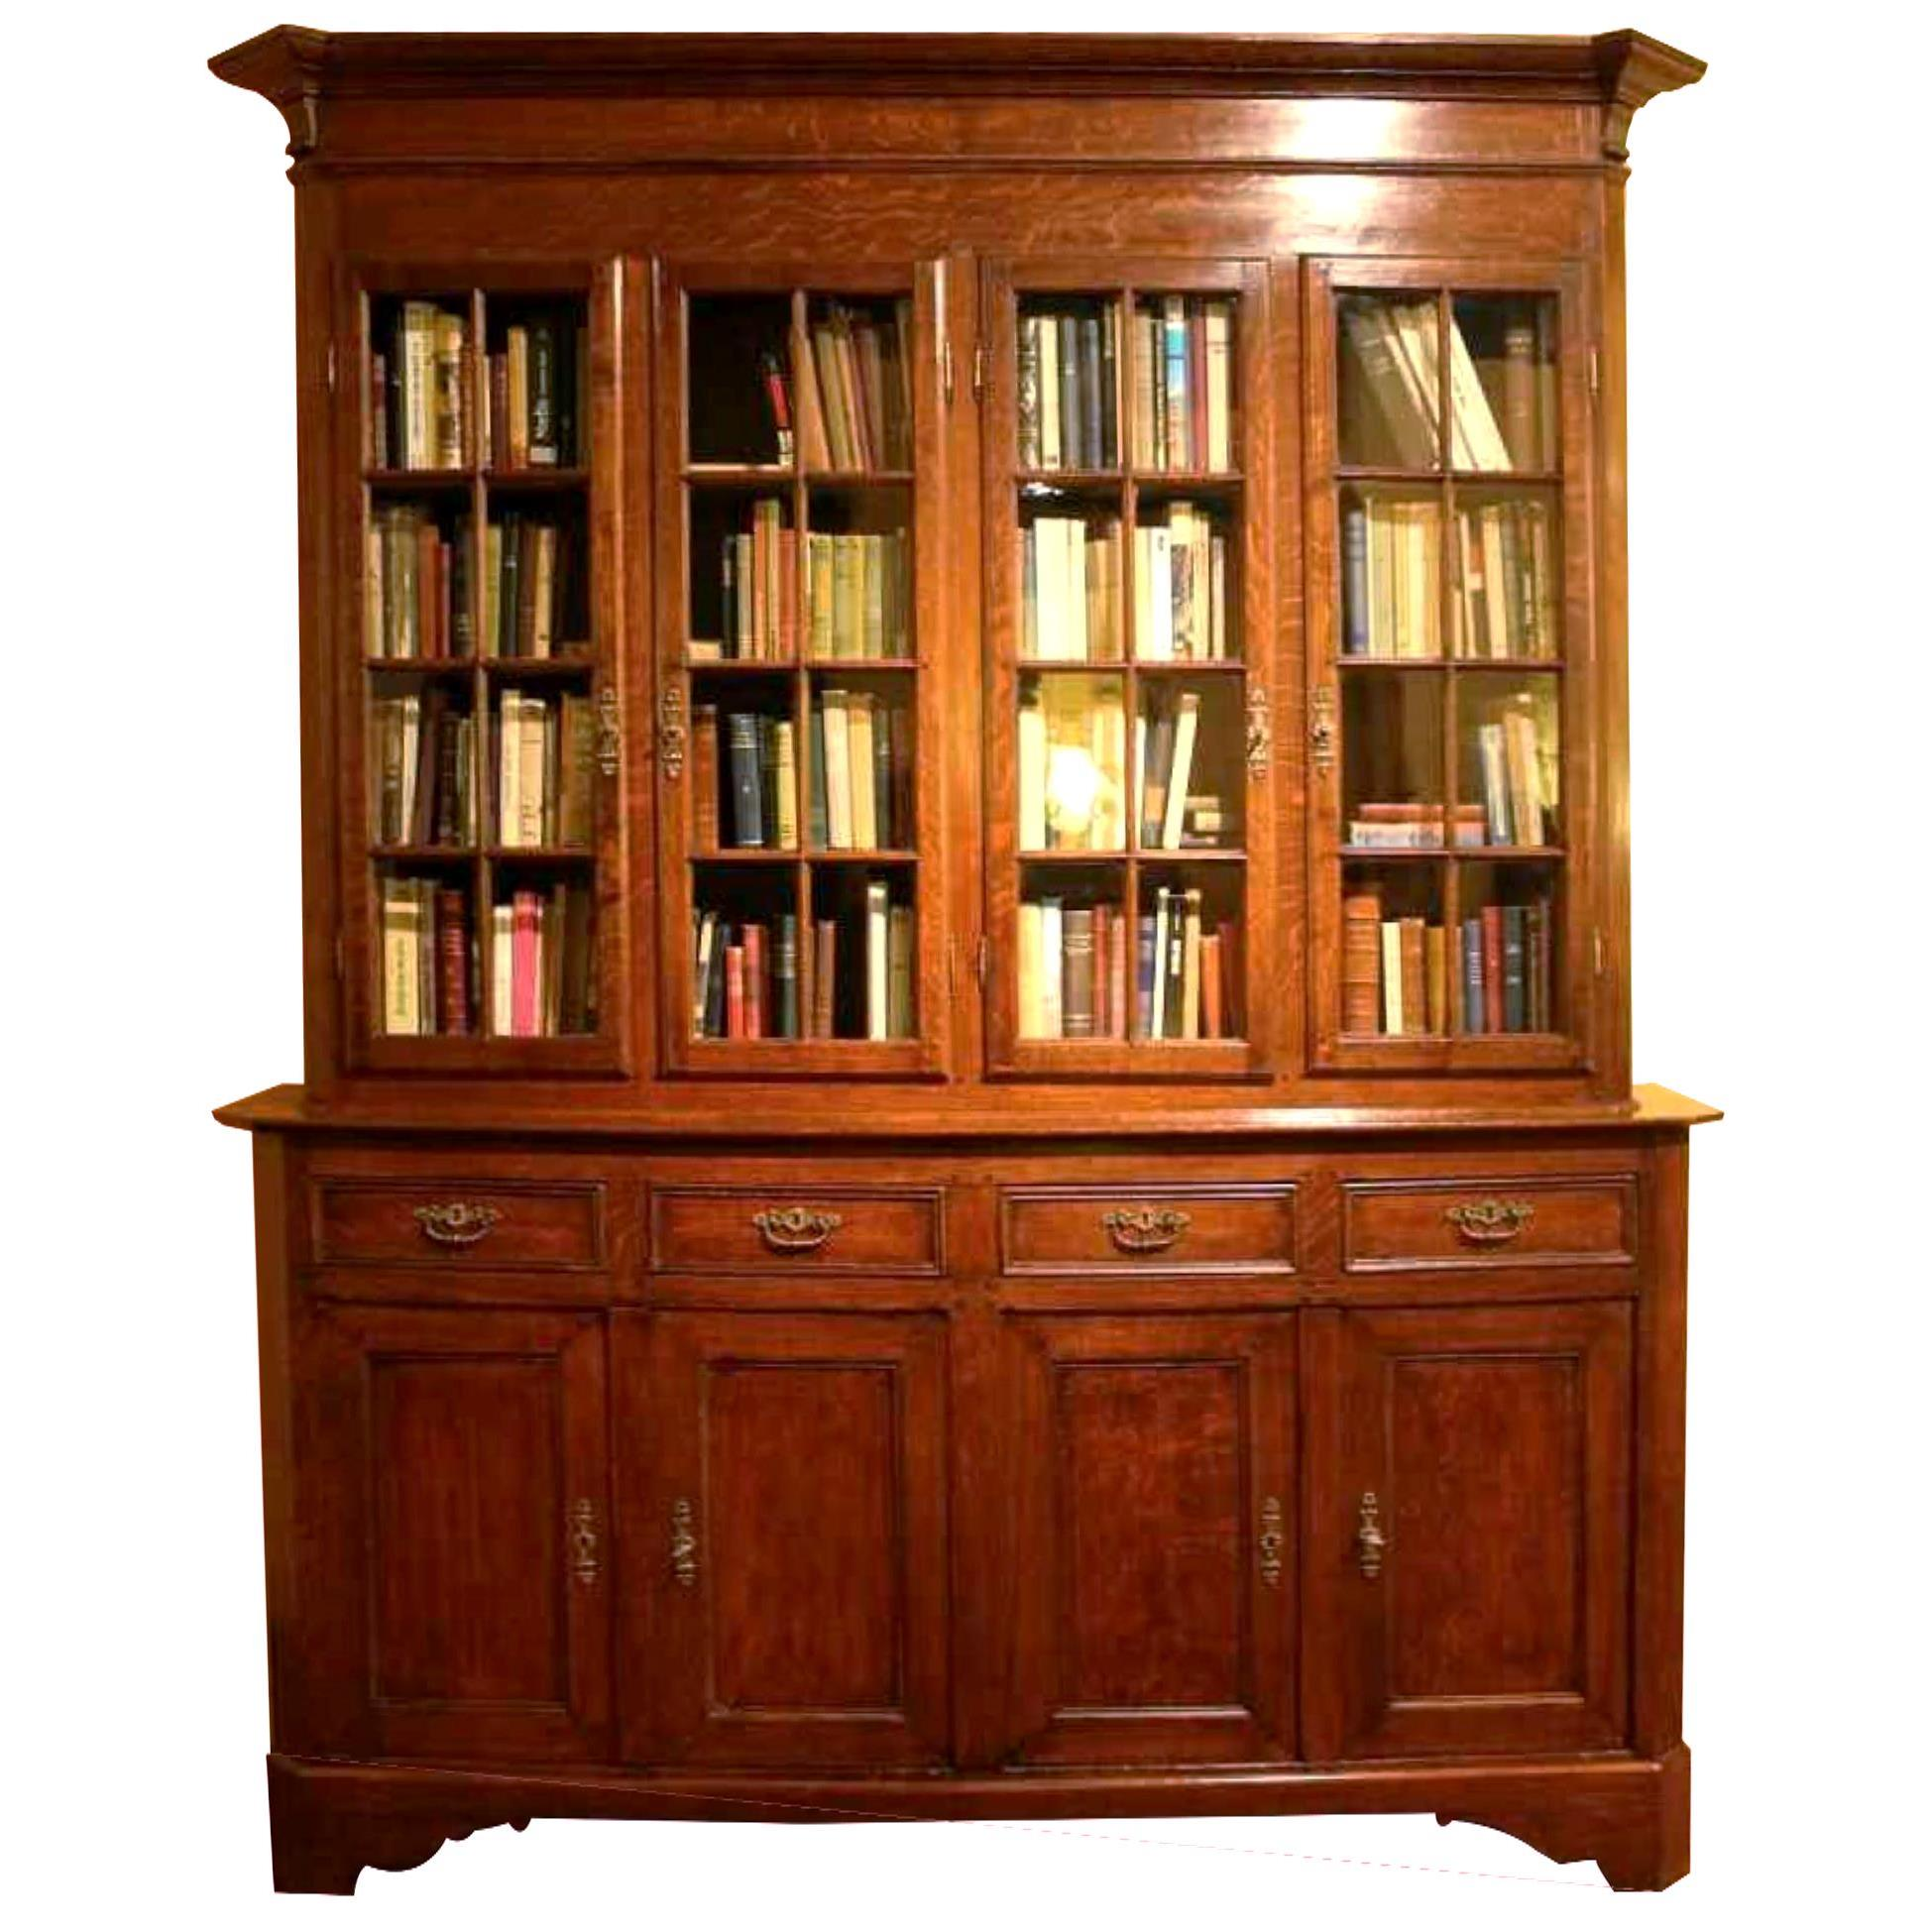 oak french library 19 century